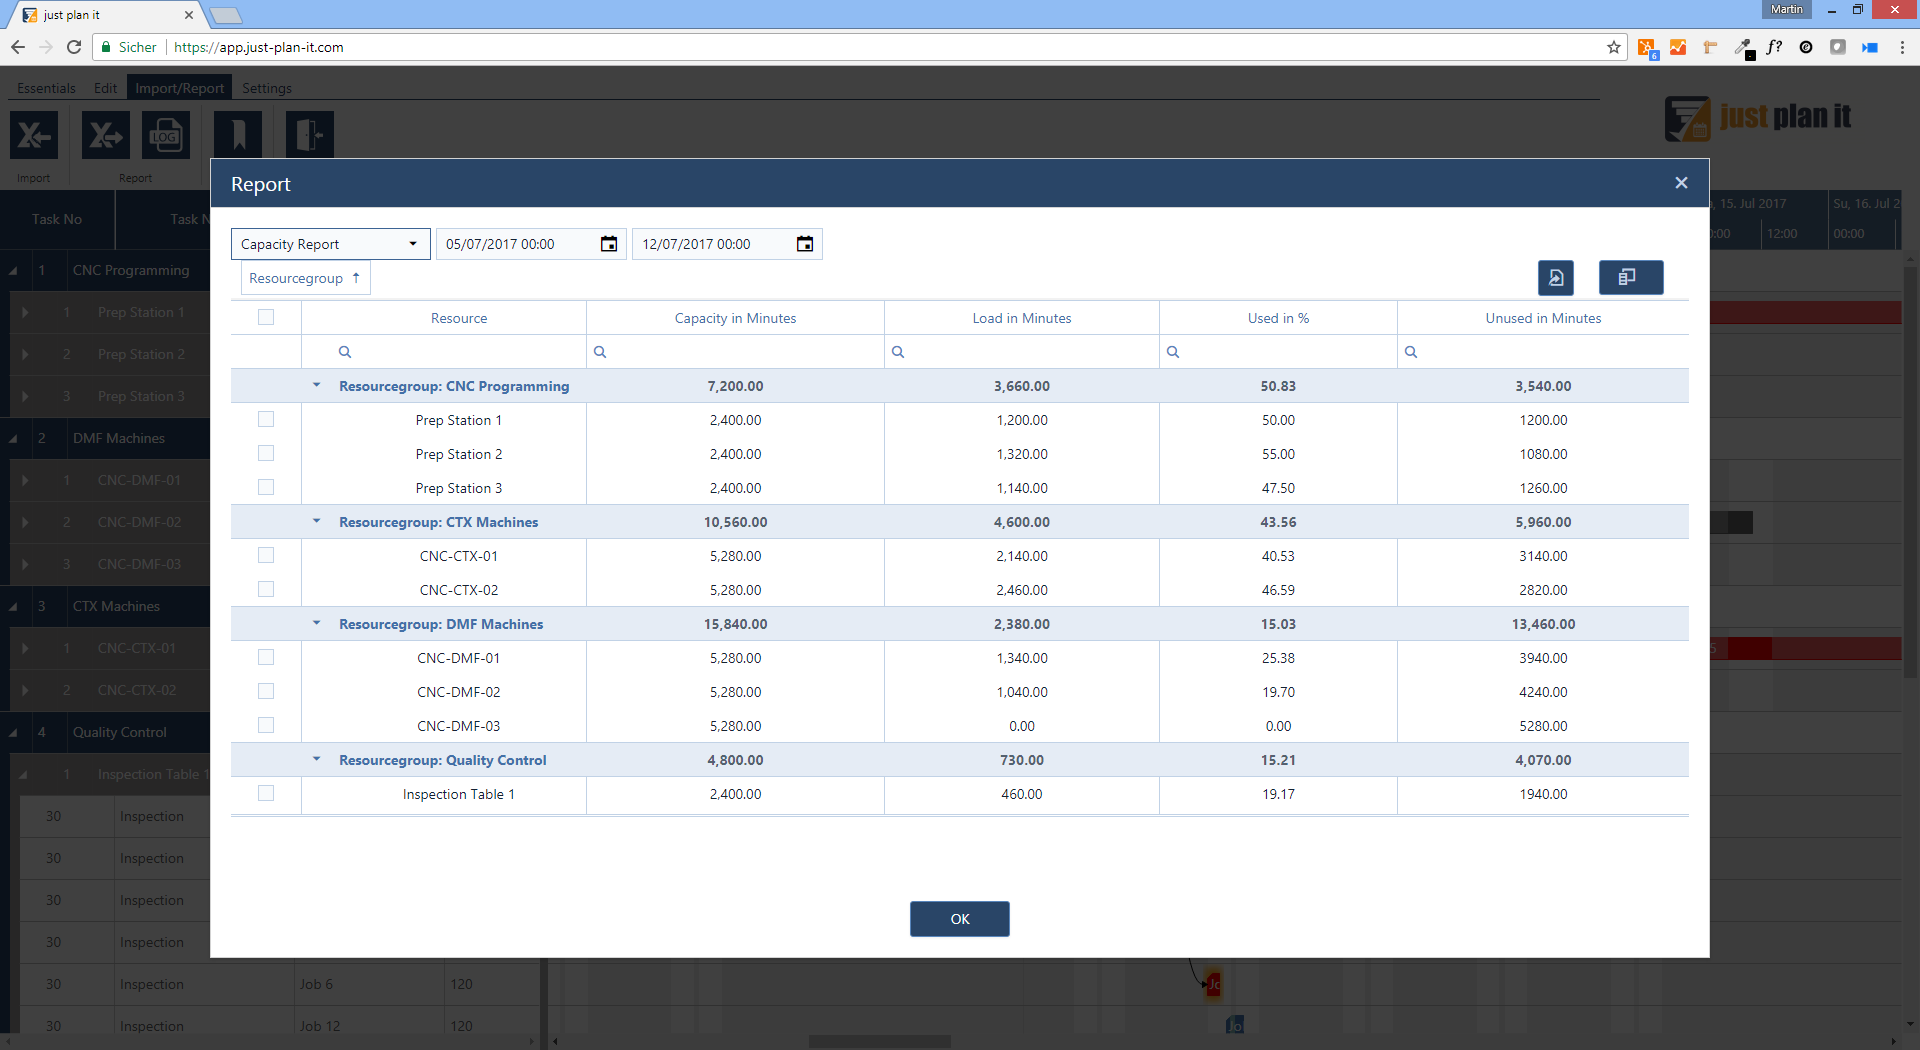 Jop Shop Scheduling Software | Capacity Report | just plan it - made by NETRONIC